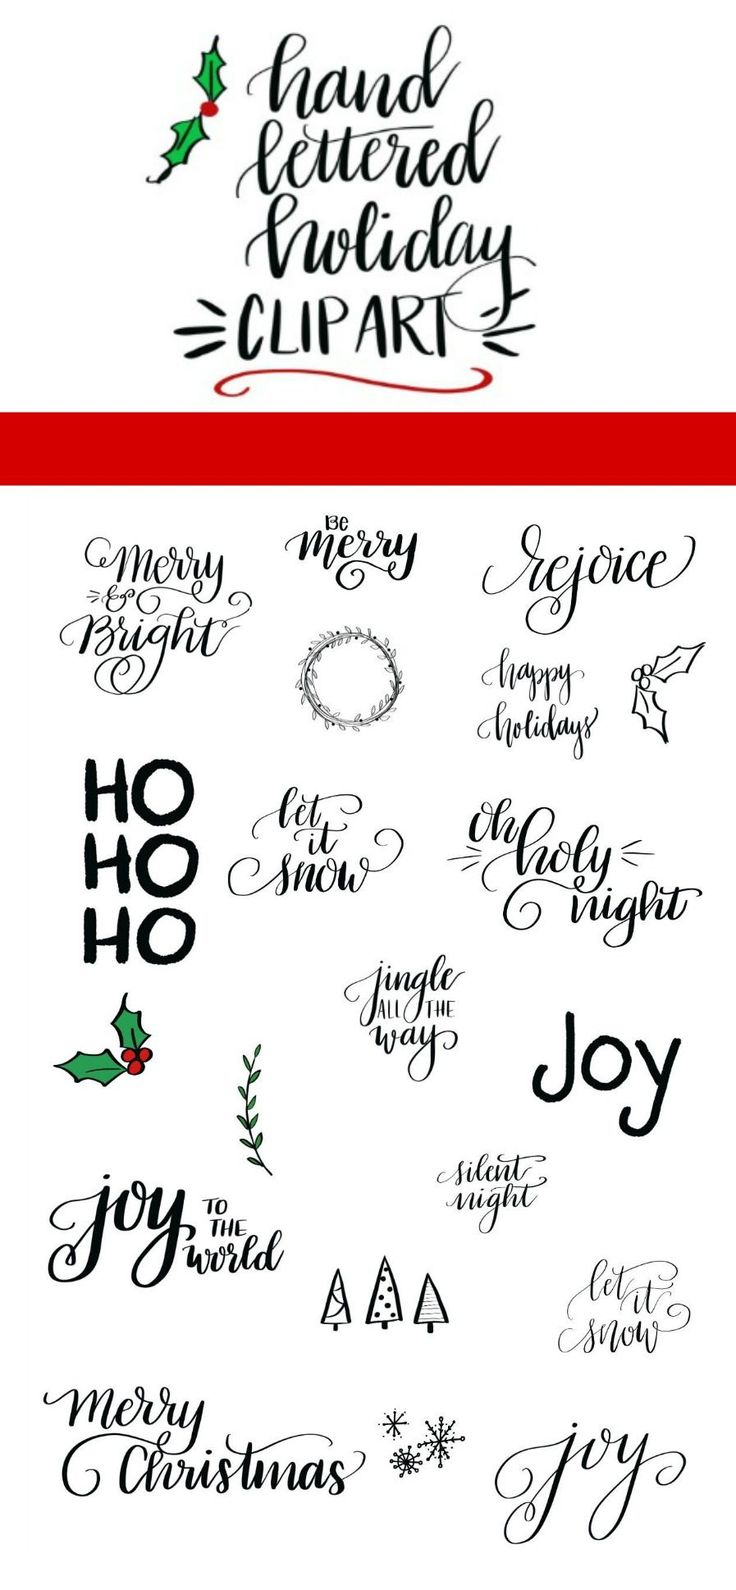 Hand Lettered Holiday Clip Art Release! - One Artsy Mama                                                                                                                                                                                 More